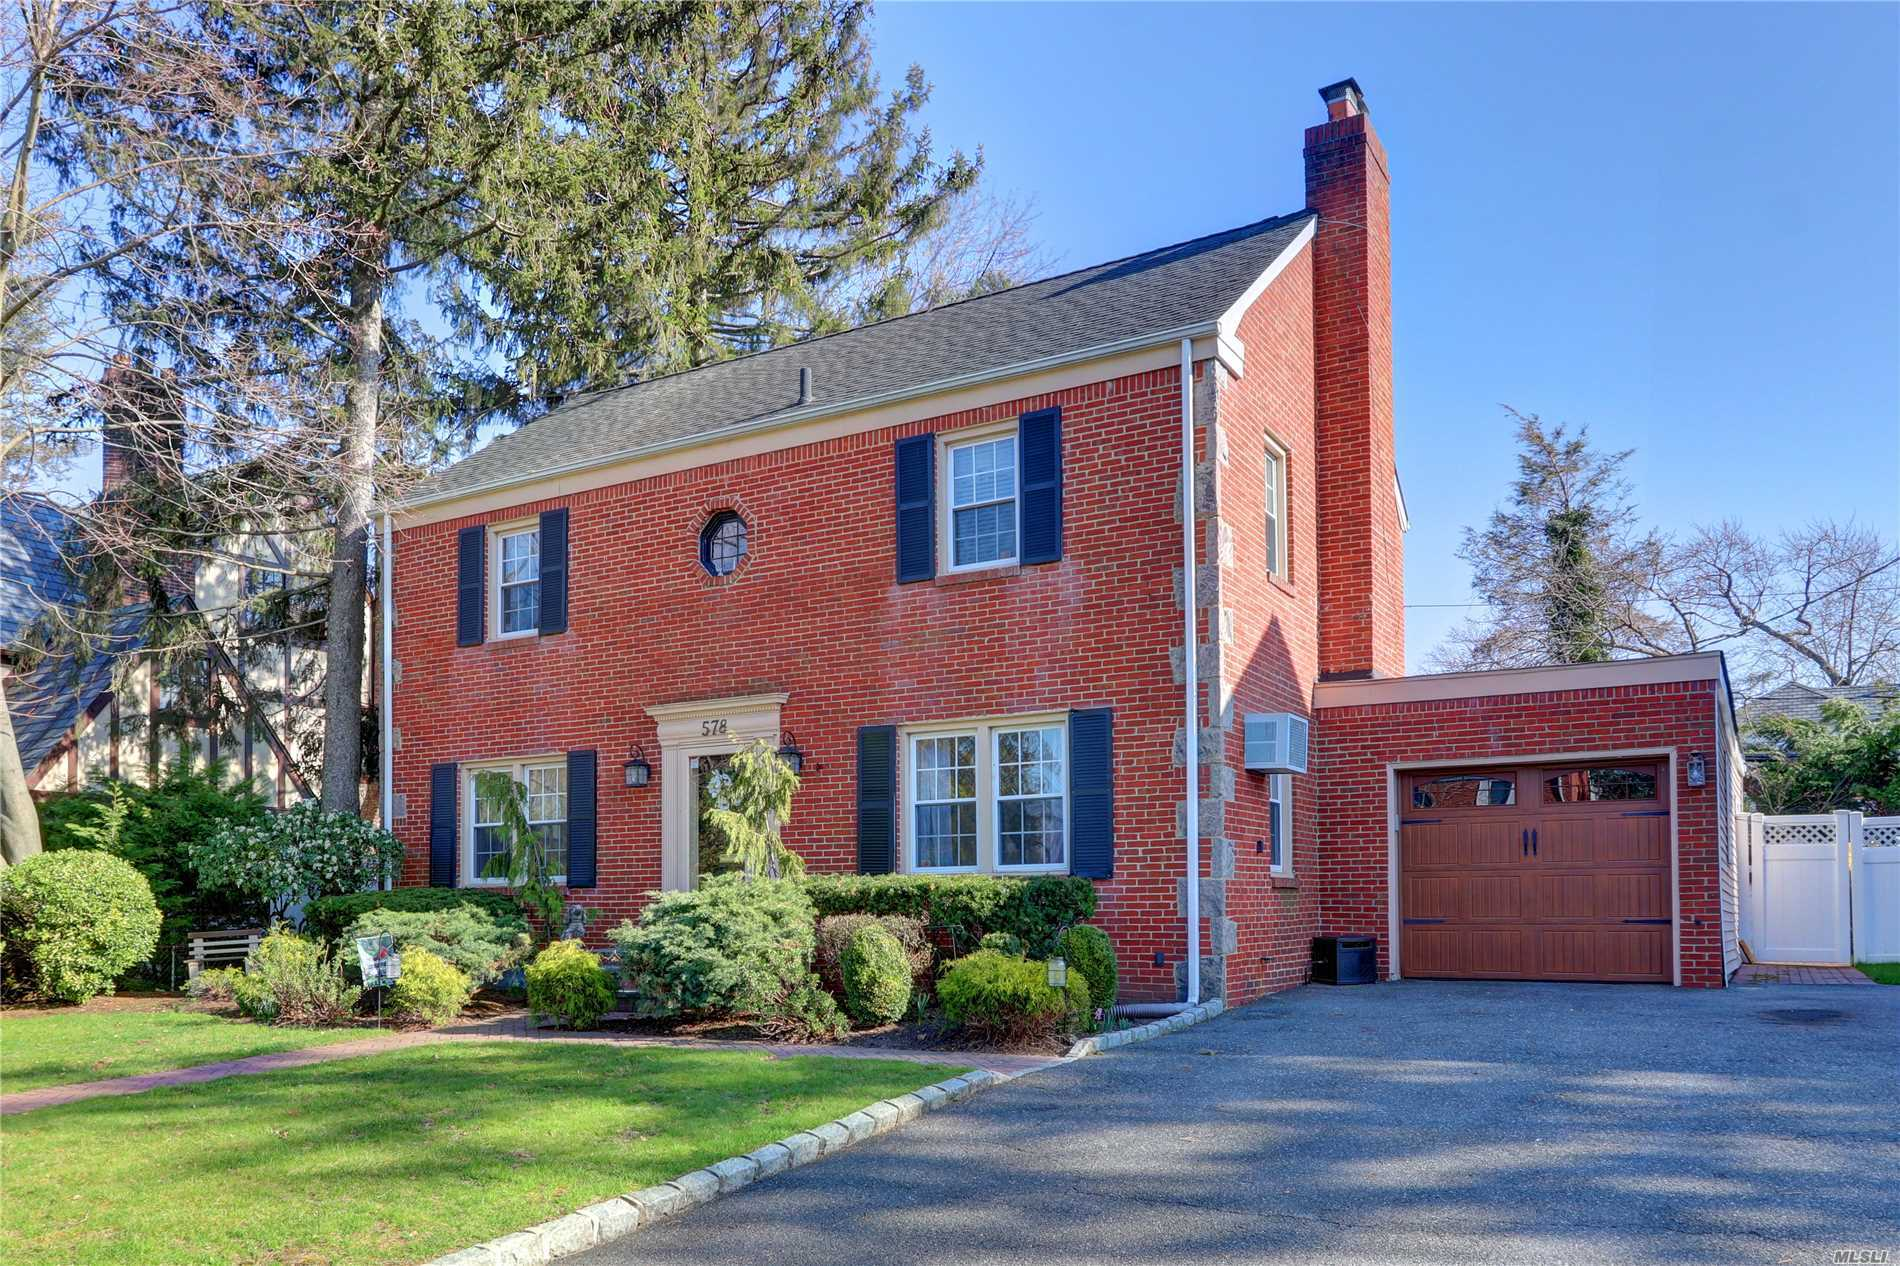 Photo of home for sale at 578 Lakeview Ave, Rockville Centre NY